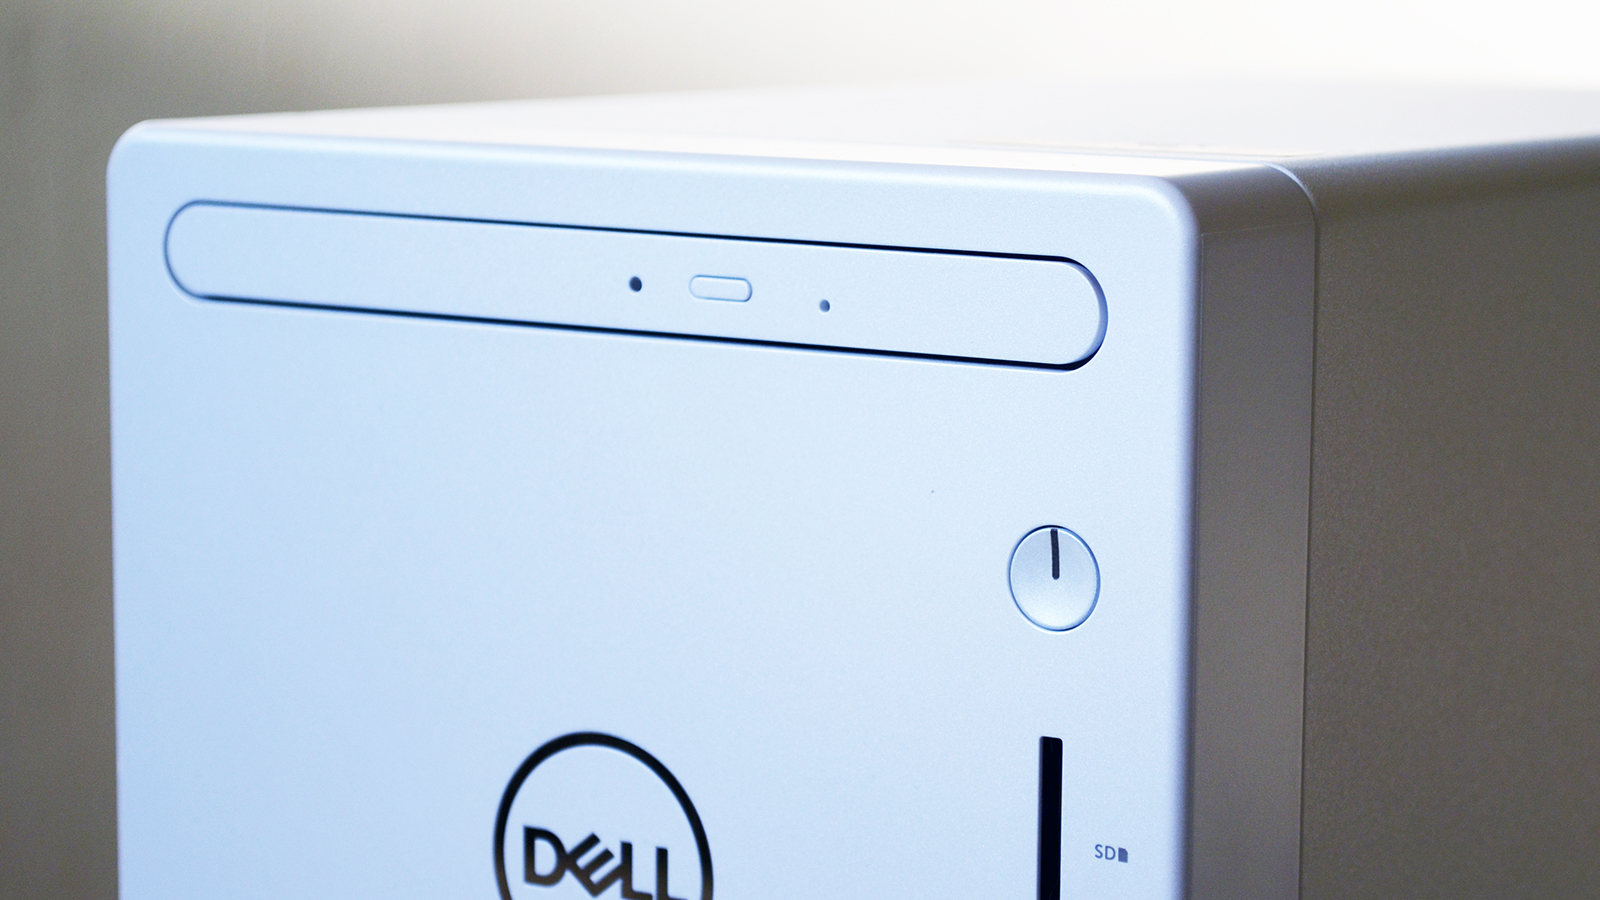 Dell XPS 8940 Special Edition's Optical Drive